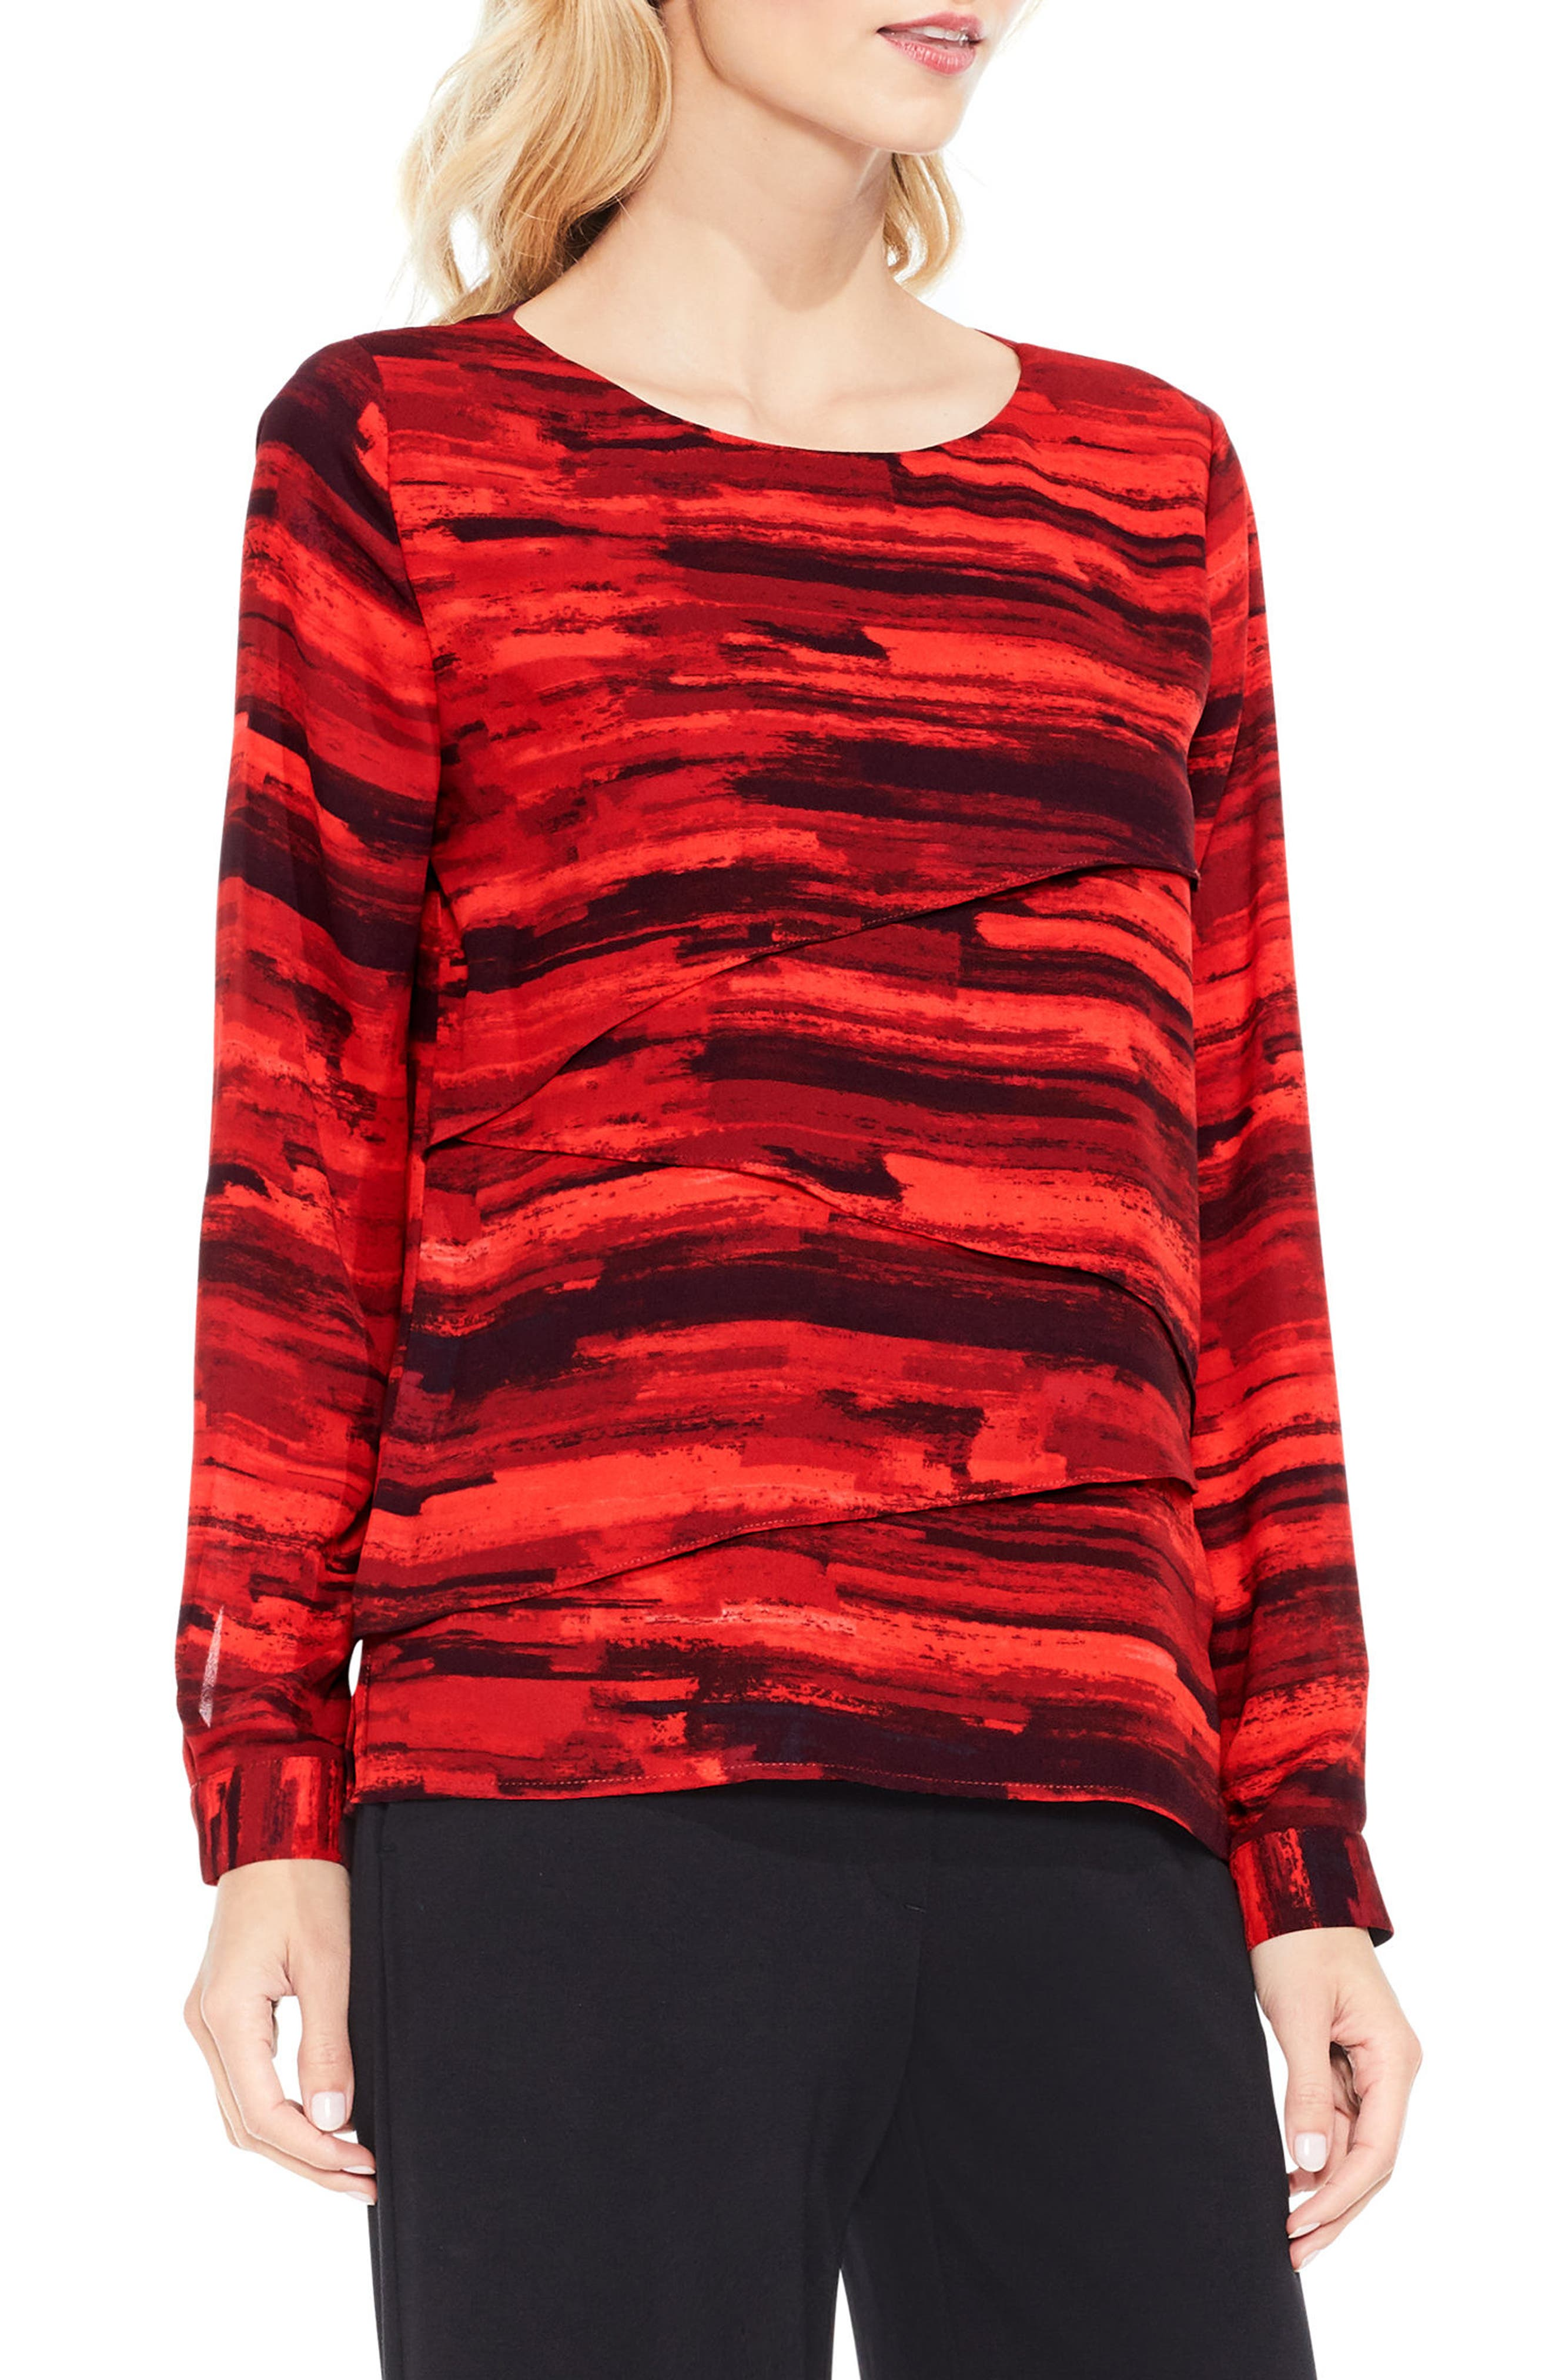 Muses Print Tiered Blouse,                             Main thumbnail 1, color,                             614